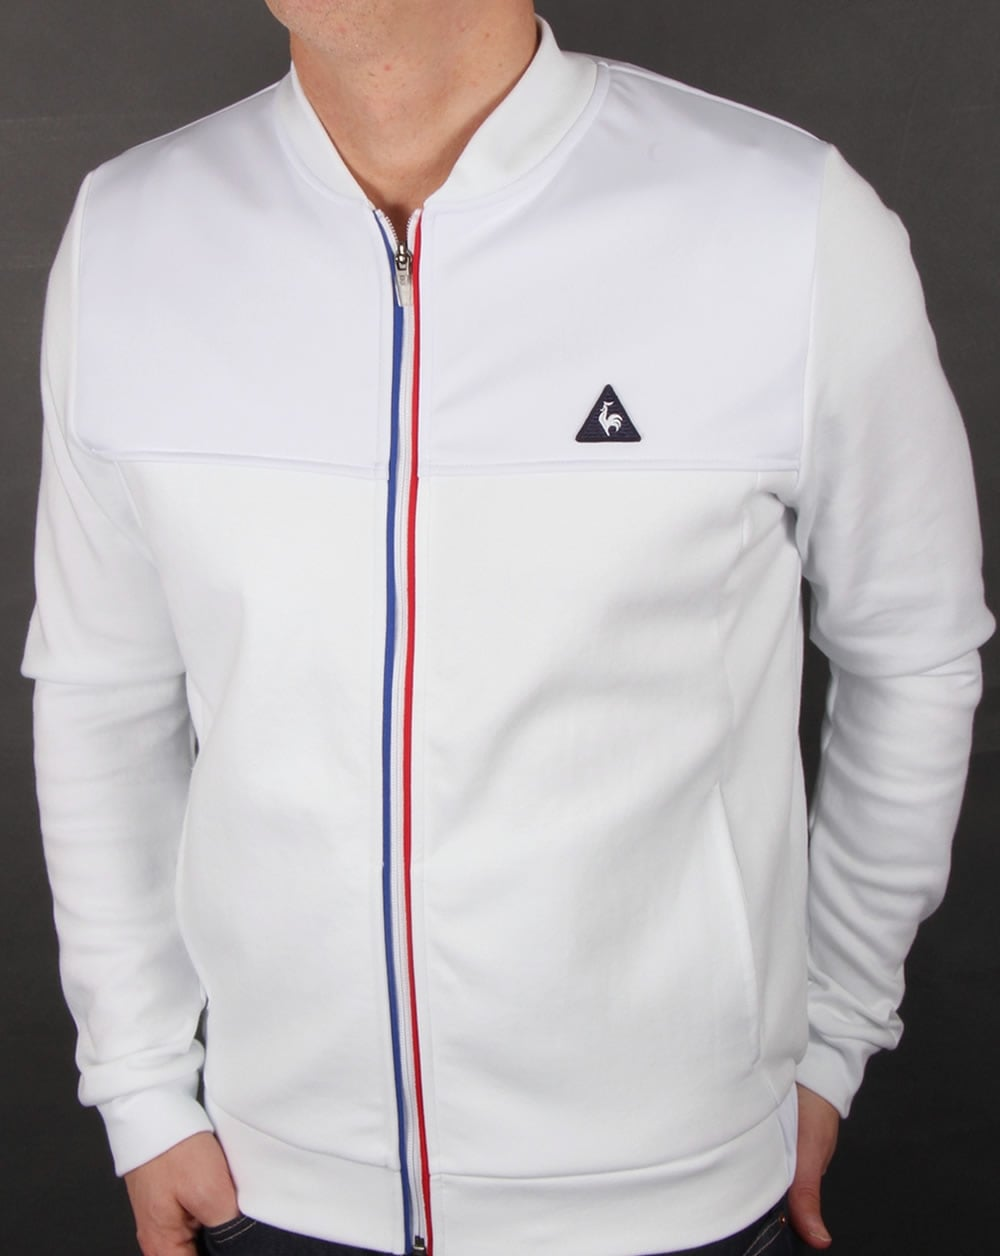 le coq sportif tricolore track top white jacket tracksuit mens. Black Bedroom Furniture Sets. Home Design Ideas